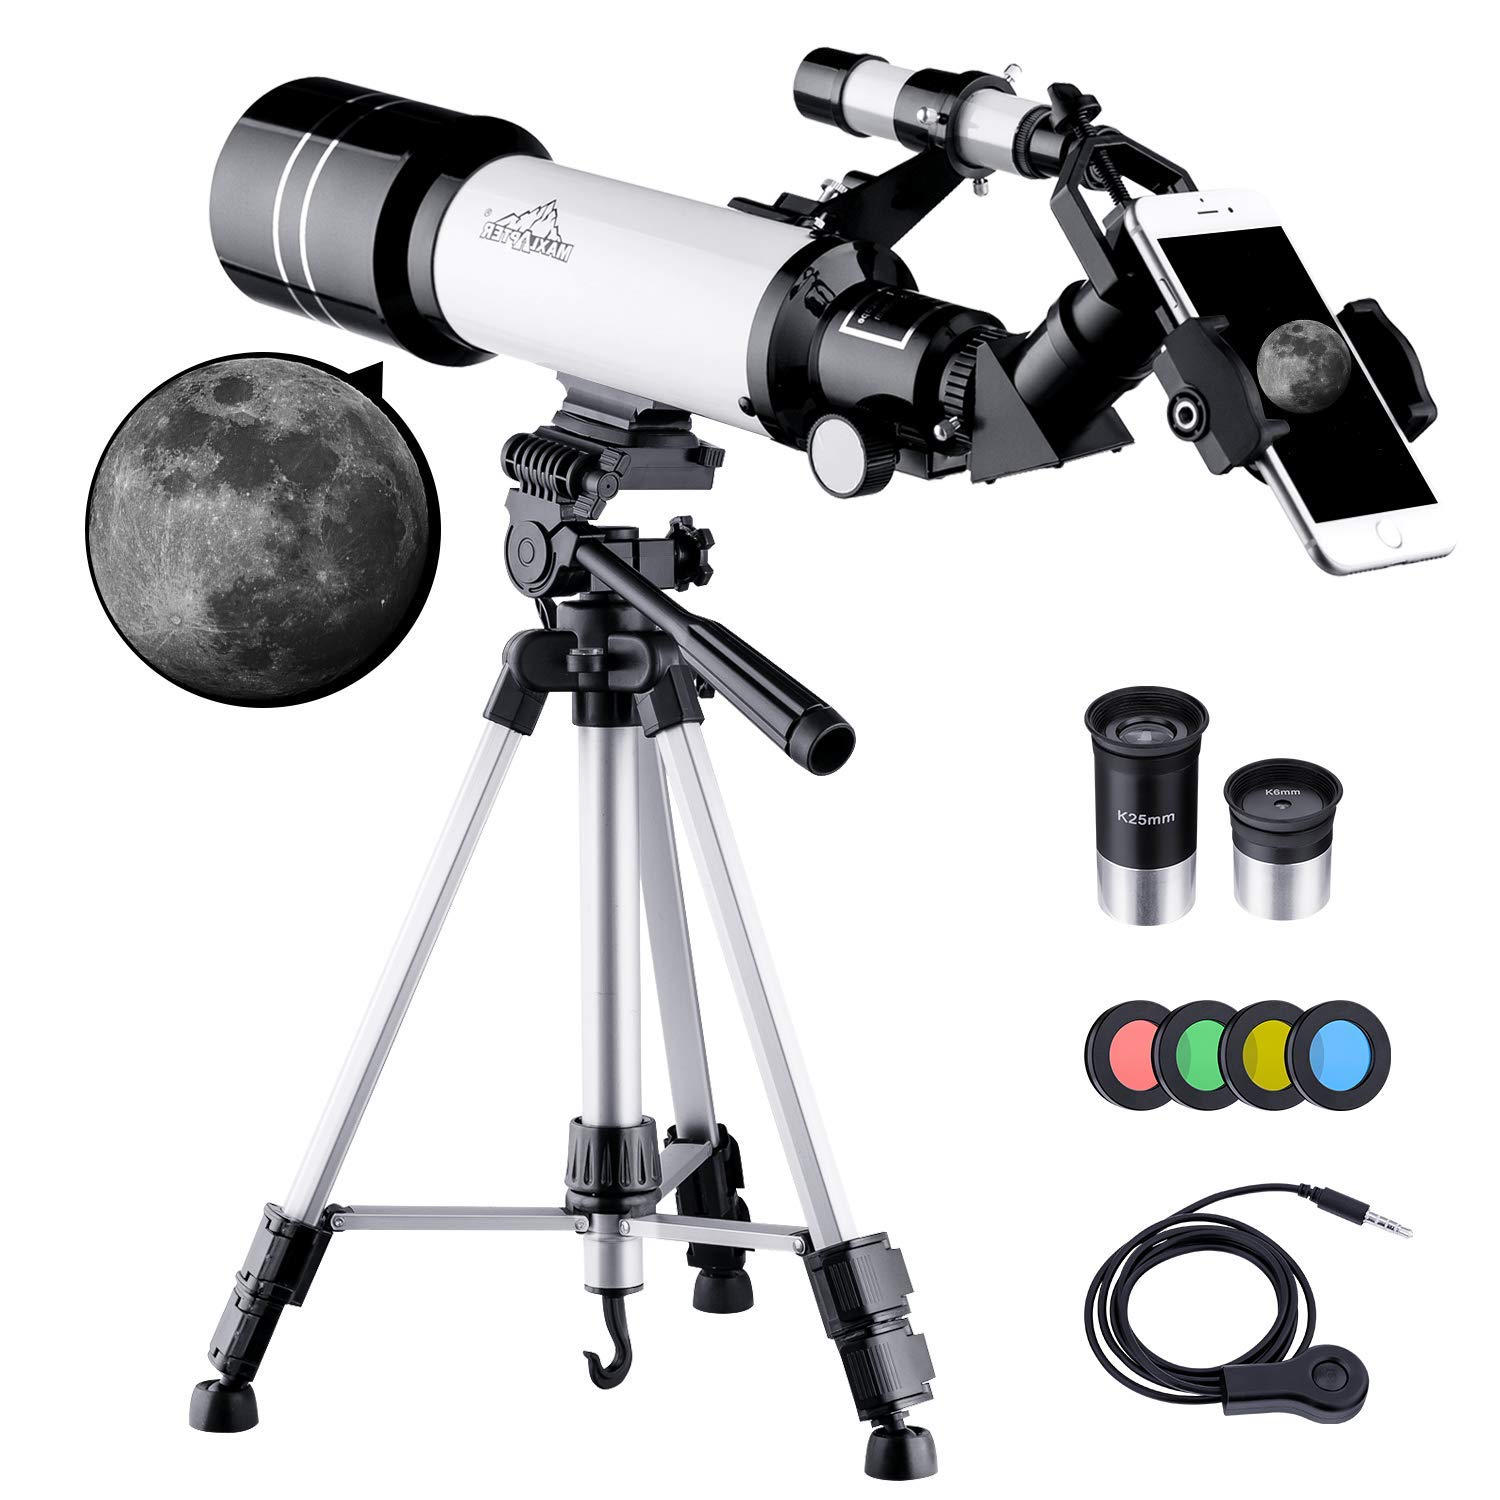 MAXLAPTER Kids Telescope for Adults Astronomy Beginners, 70mm Travel Refractor Telescope with Adjustable 47inch Tripod, Smartphone Adapter, Camera Shutter Wire Control, Backpack and Moon Filter by MAXLAPTER